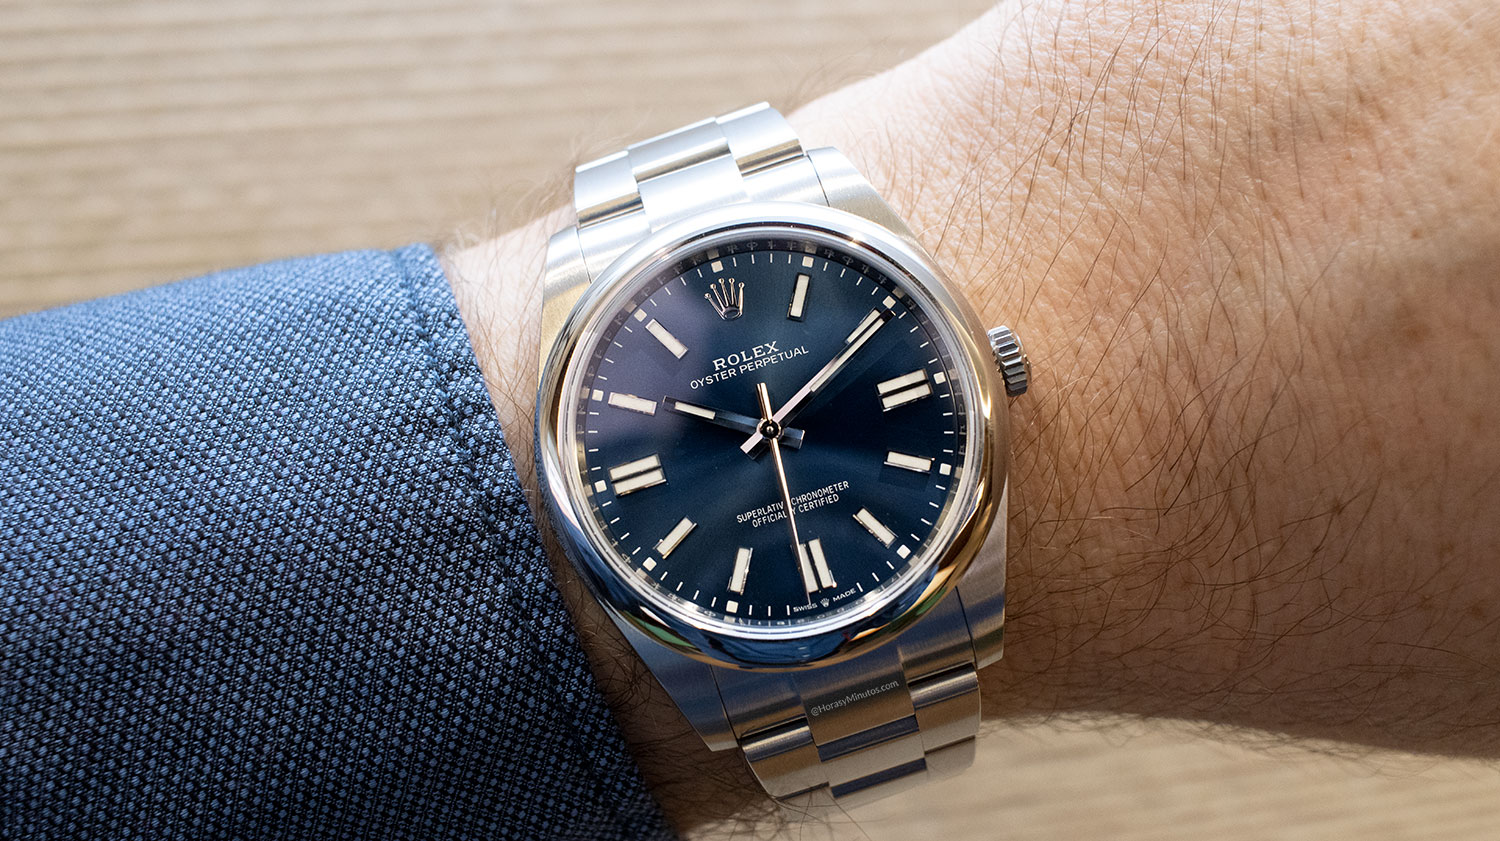 Rolex Oyster Perpetual 41 mm 2020 Referencia 124300, puesto